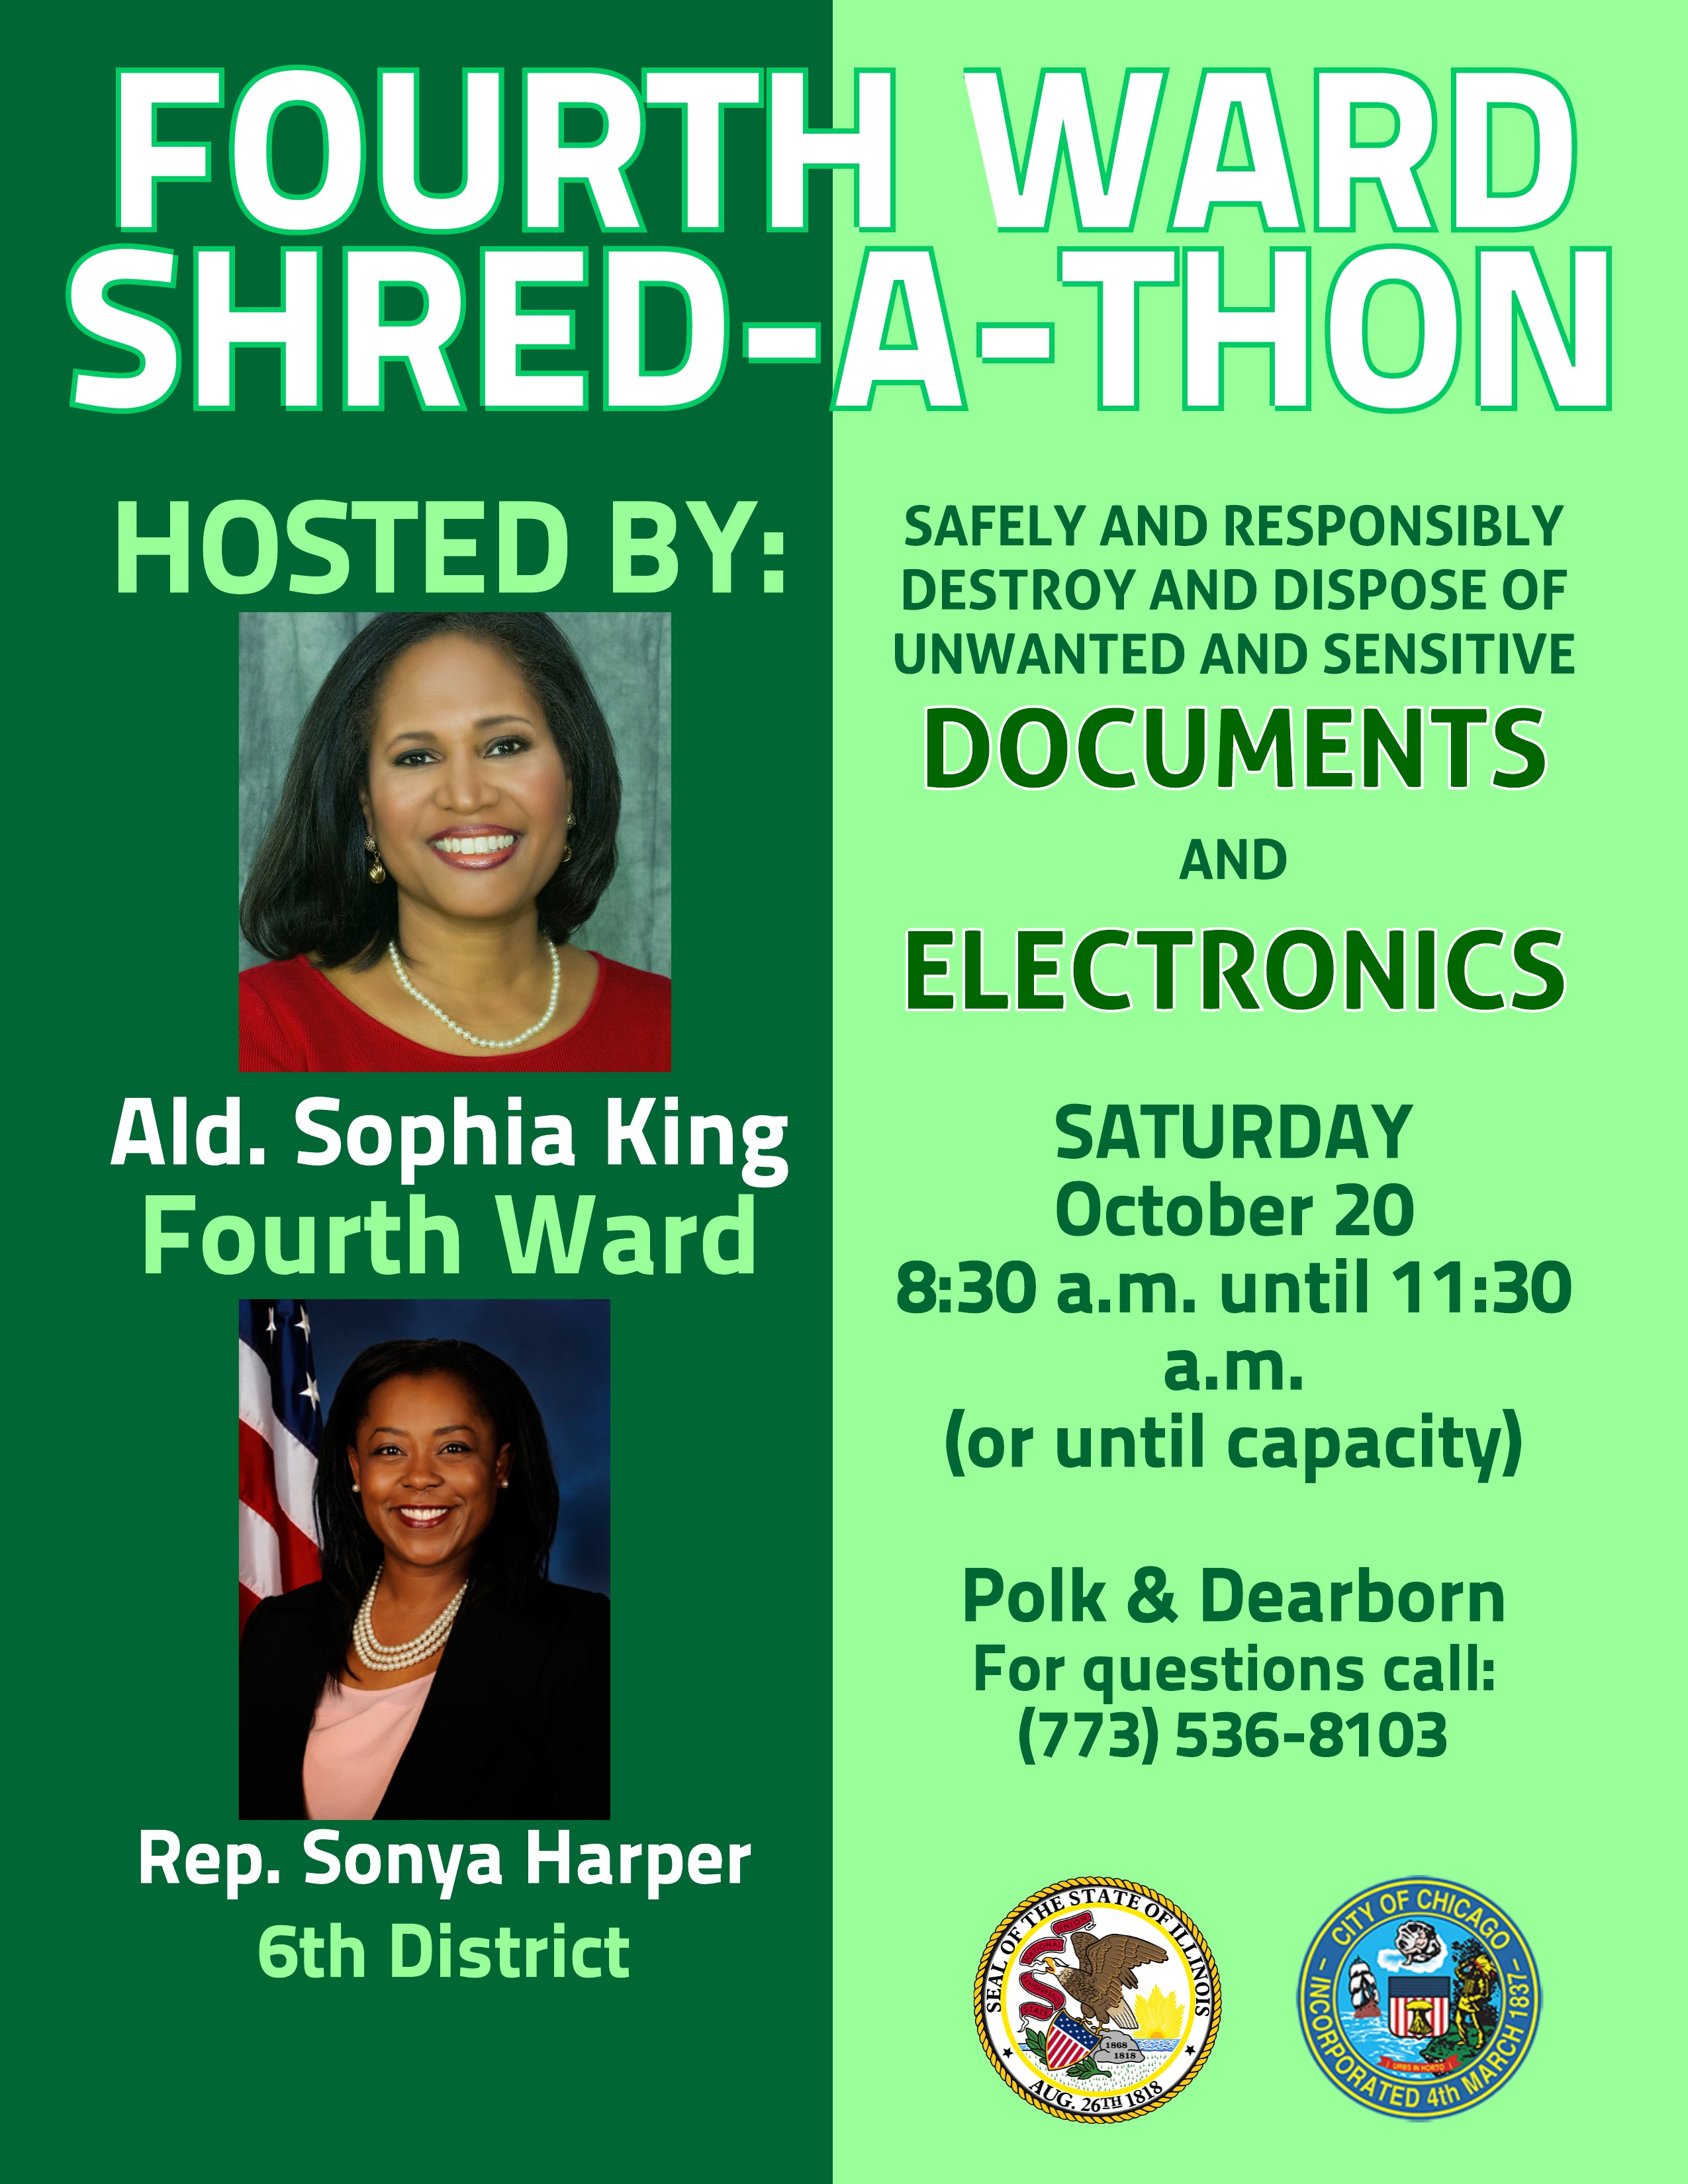 Shred a Thon Flyer -August 25 (2)